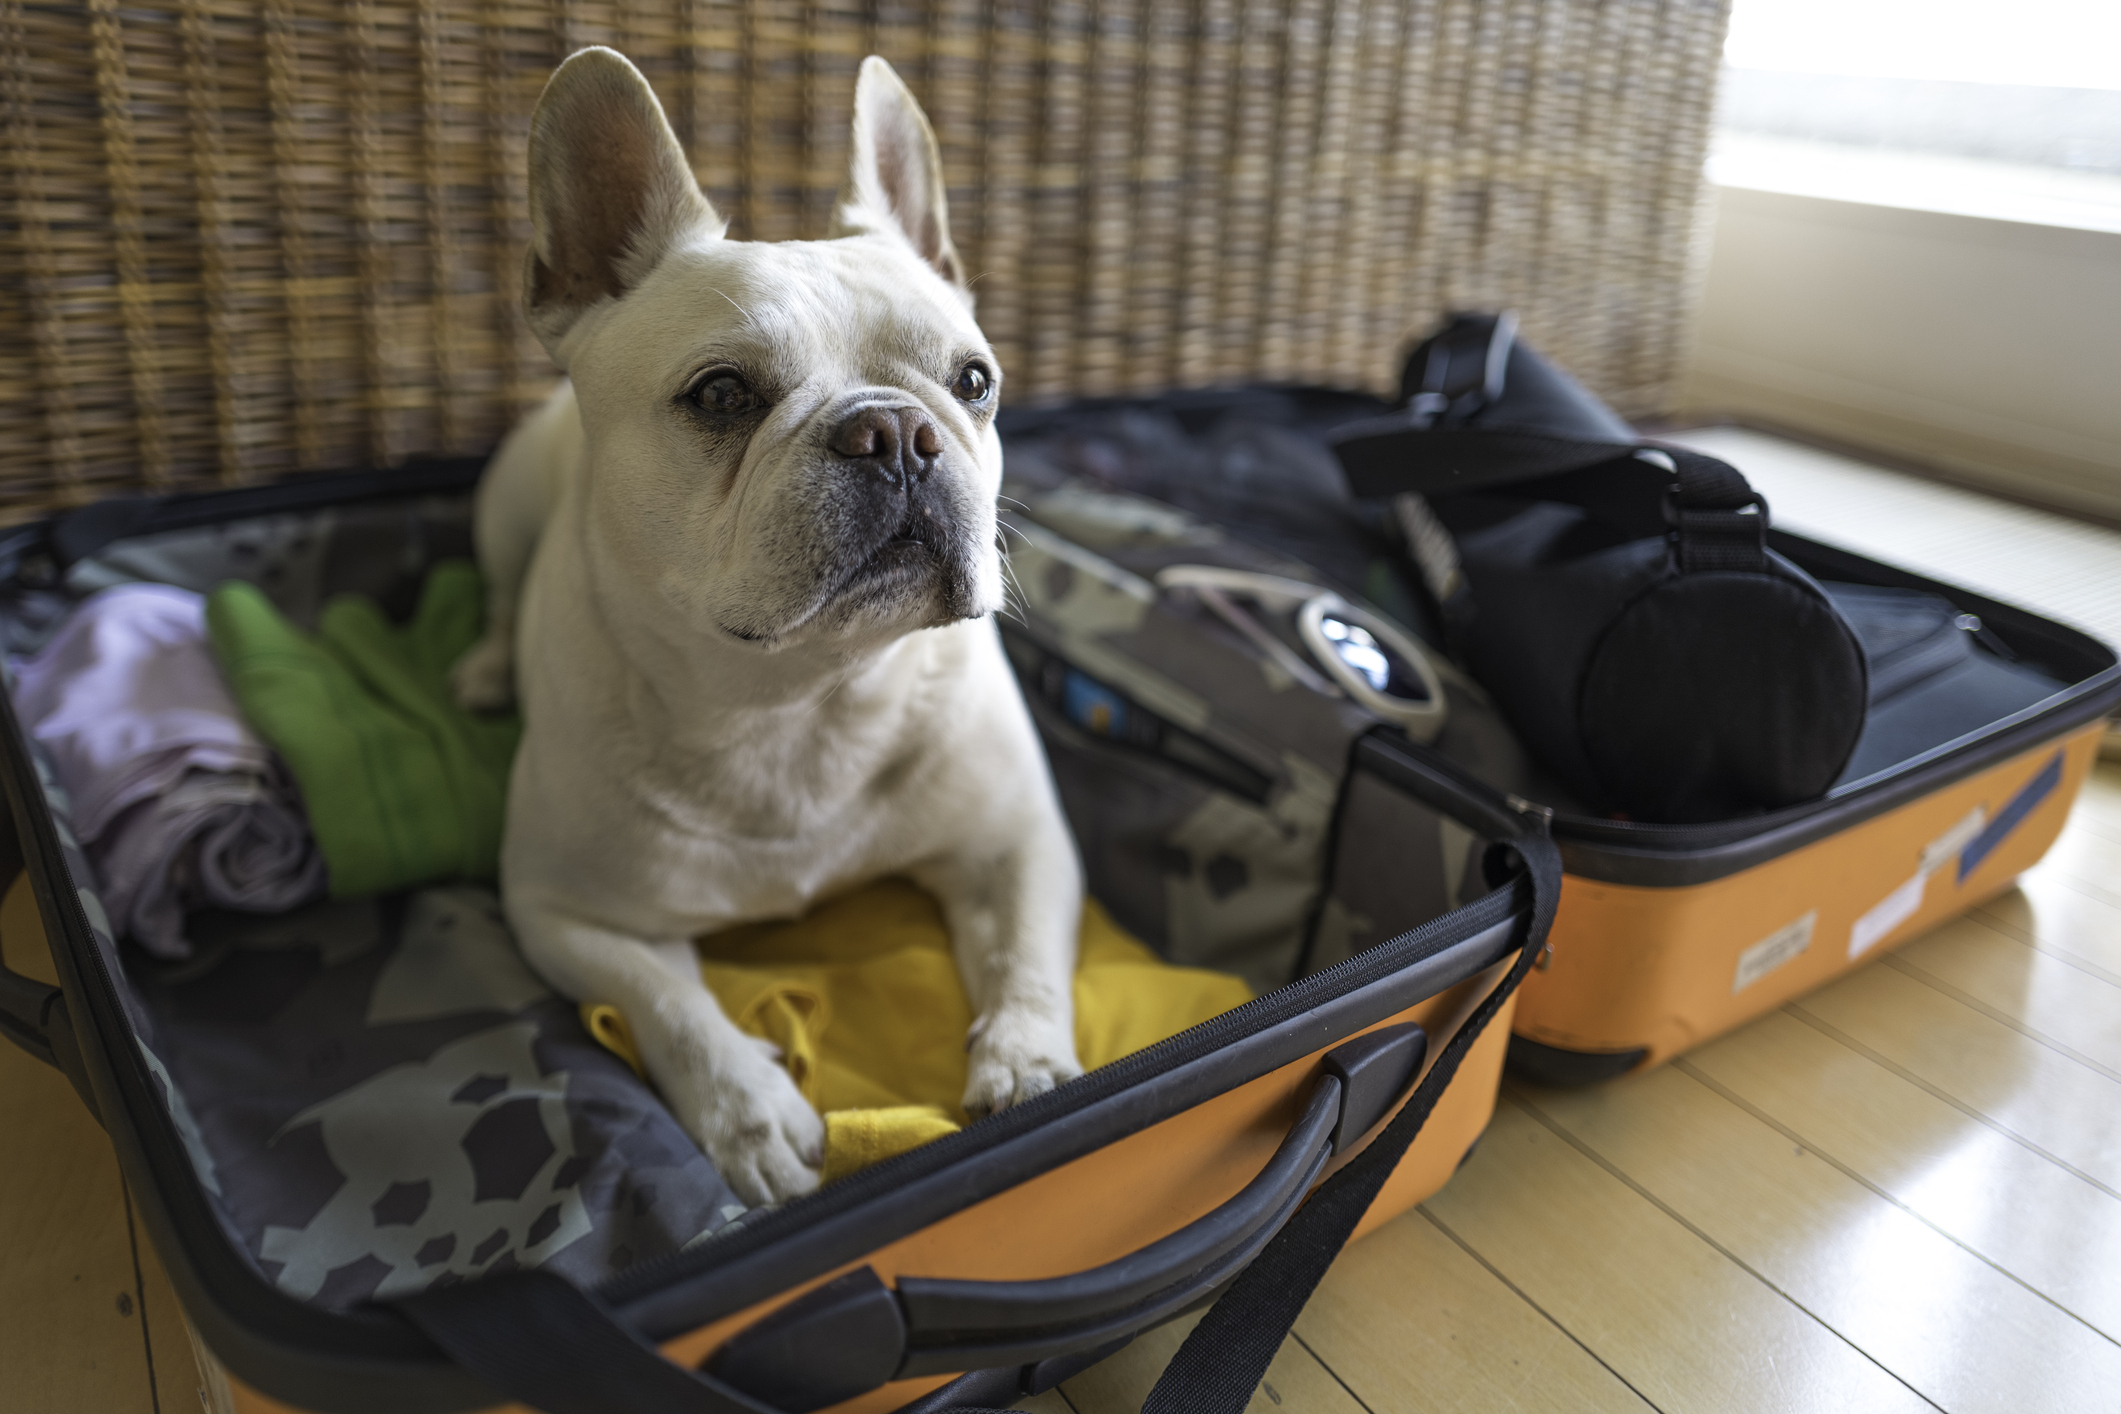 Trends - dog laying in suitcase